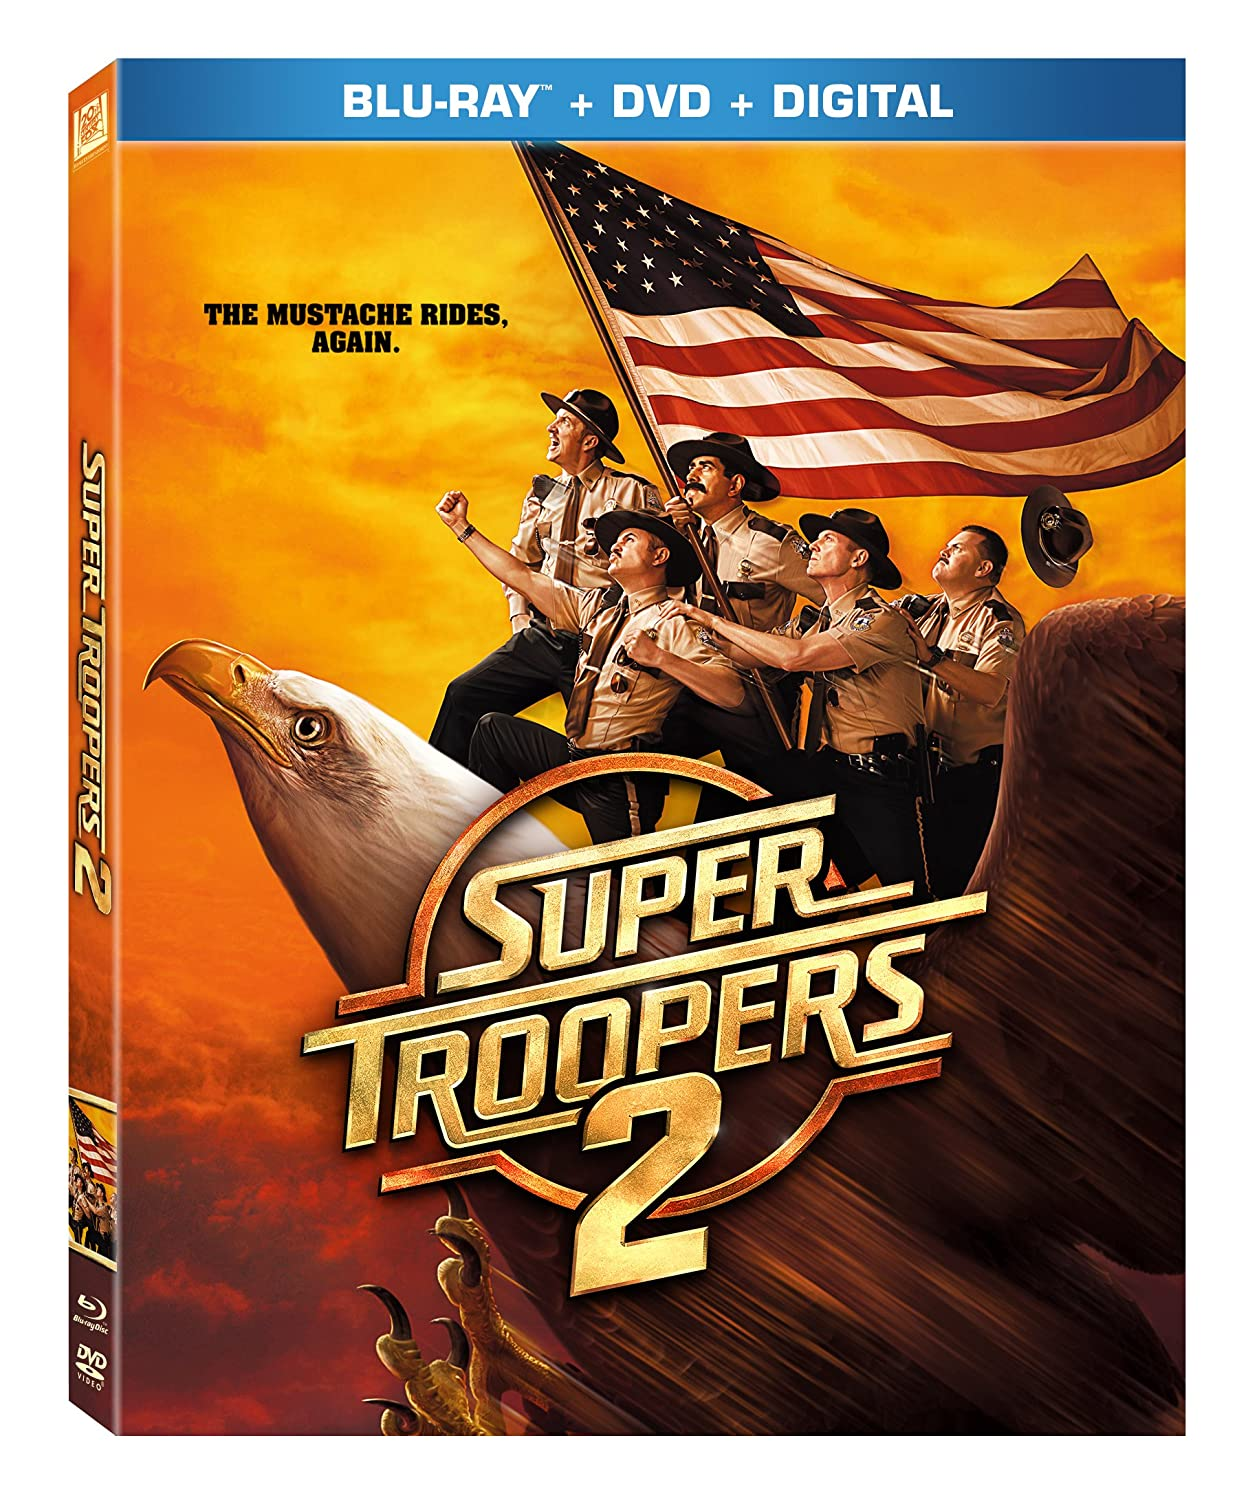 Again Super Troopers 2 Movie Novelty Mustache Costume The Mustache Rides